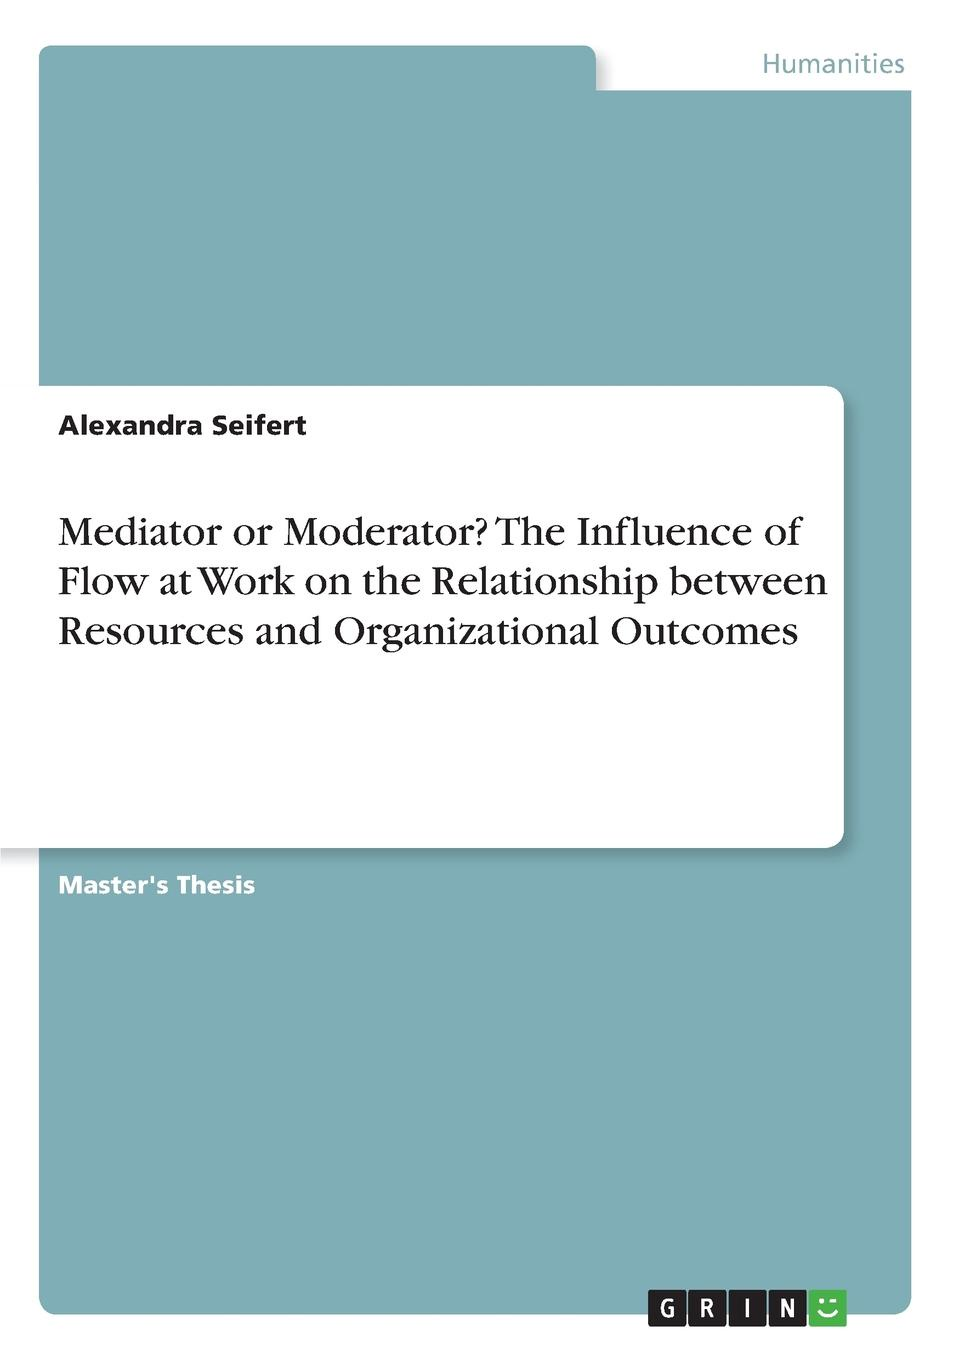 цены Alexandra Seifert Mediator or Moderator. The Influence of Flow at Work on the Relationship between Resources and Organizational Outcomes